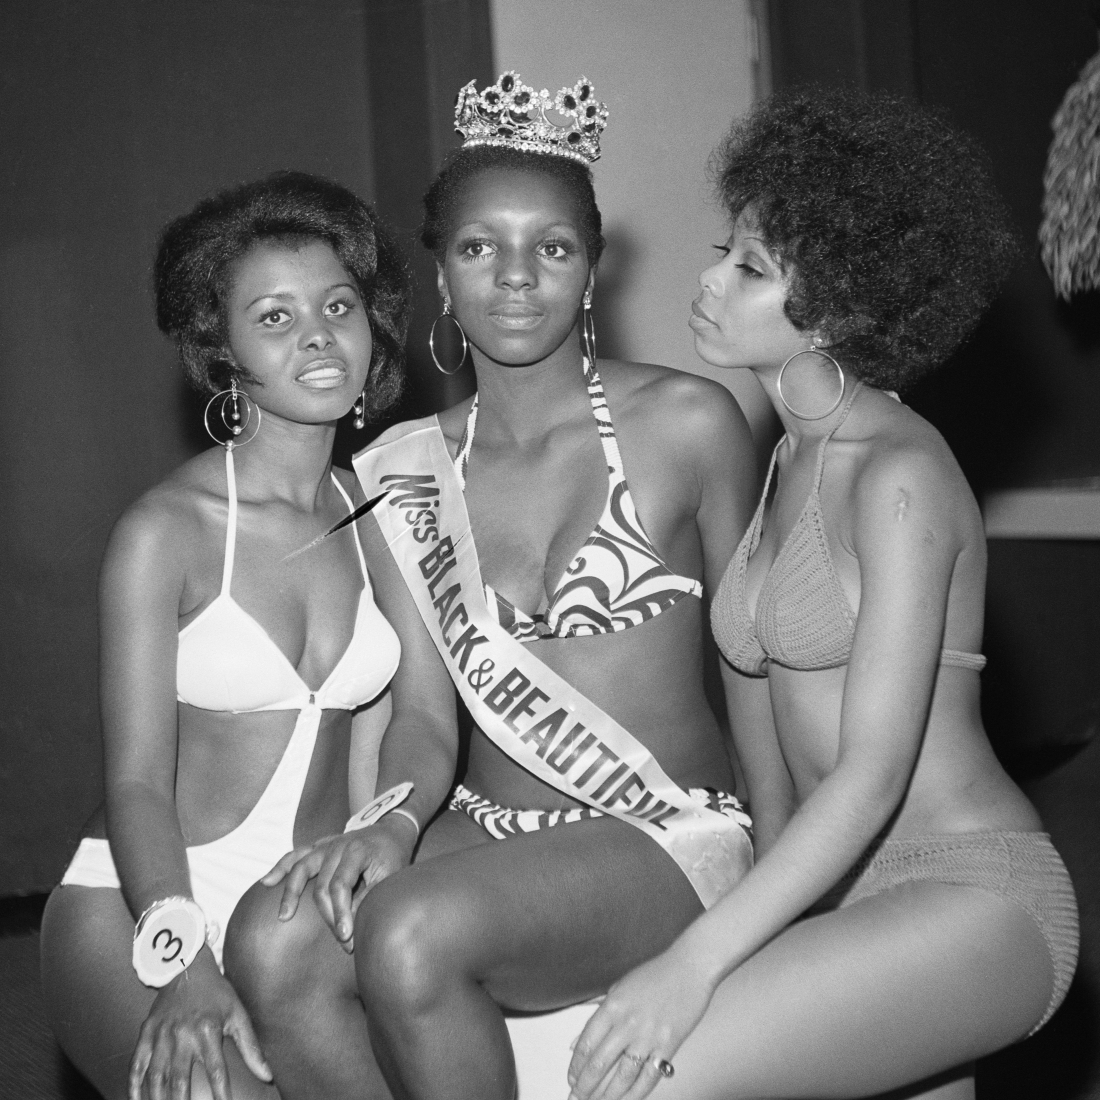 (unidentified) Miss Black & Beautiful with fellow contestant Angela Ramsey left and unidentified contestant, London, Hammersmith Palais, 1970s. From the portfolio 'Black Beauty Pageants'. © Raphael Albert, courtesy Autograph ABP